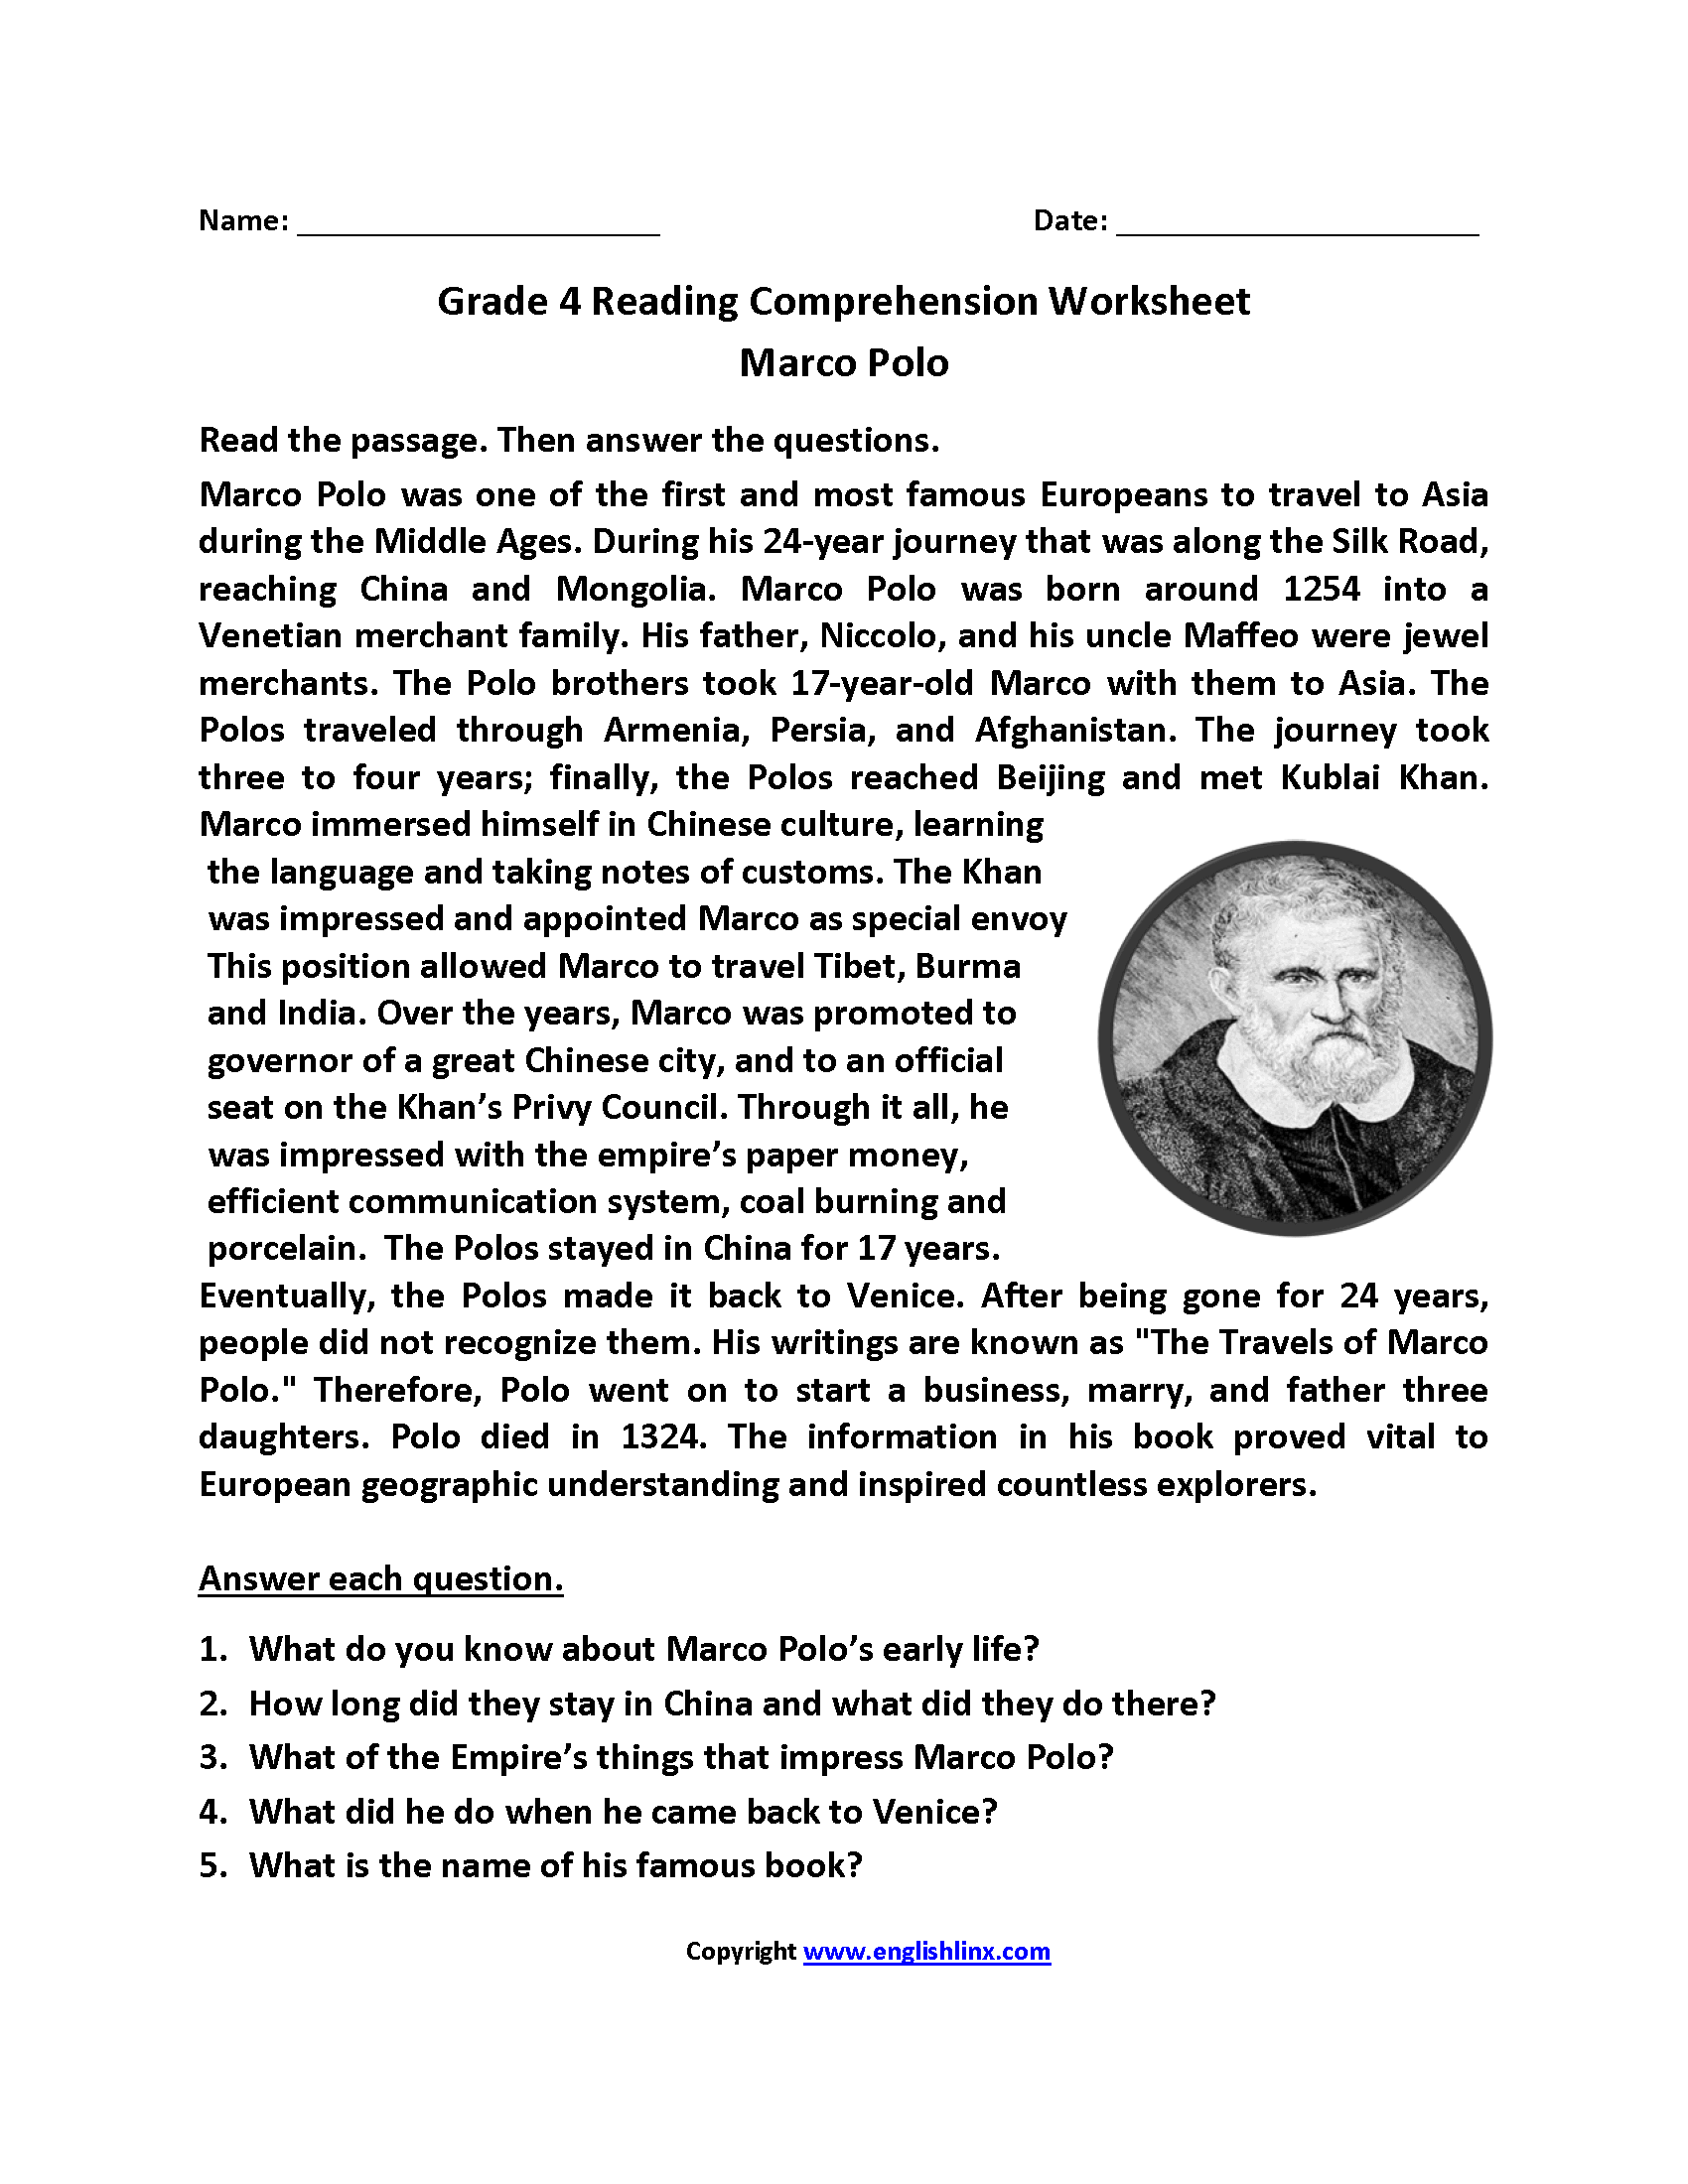 4th Grade Reading Comprehension Printable Worksheets